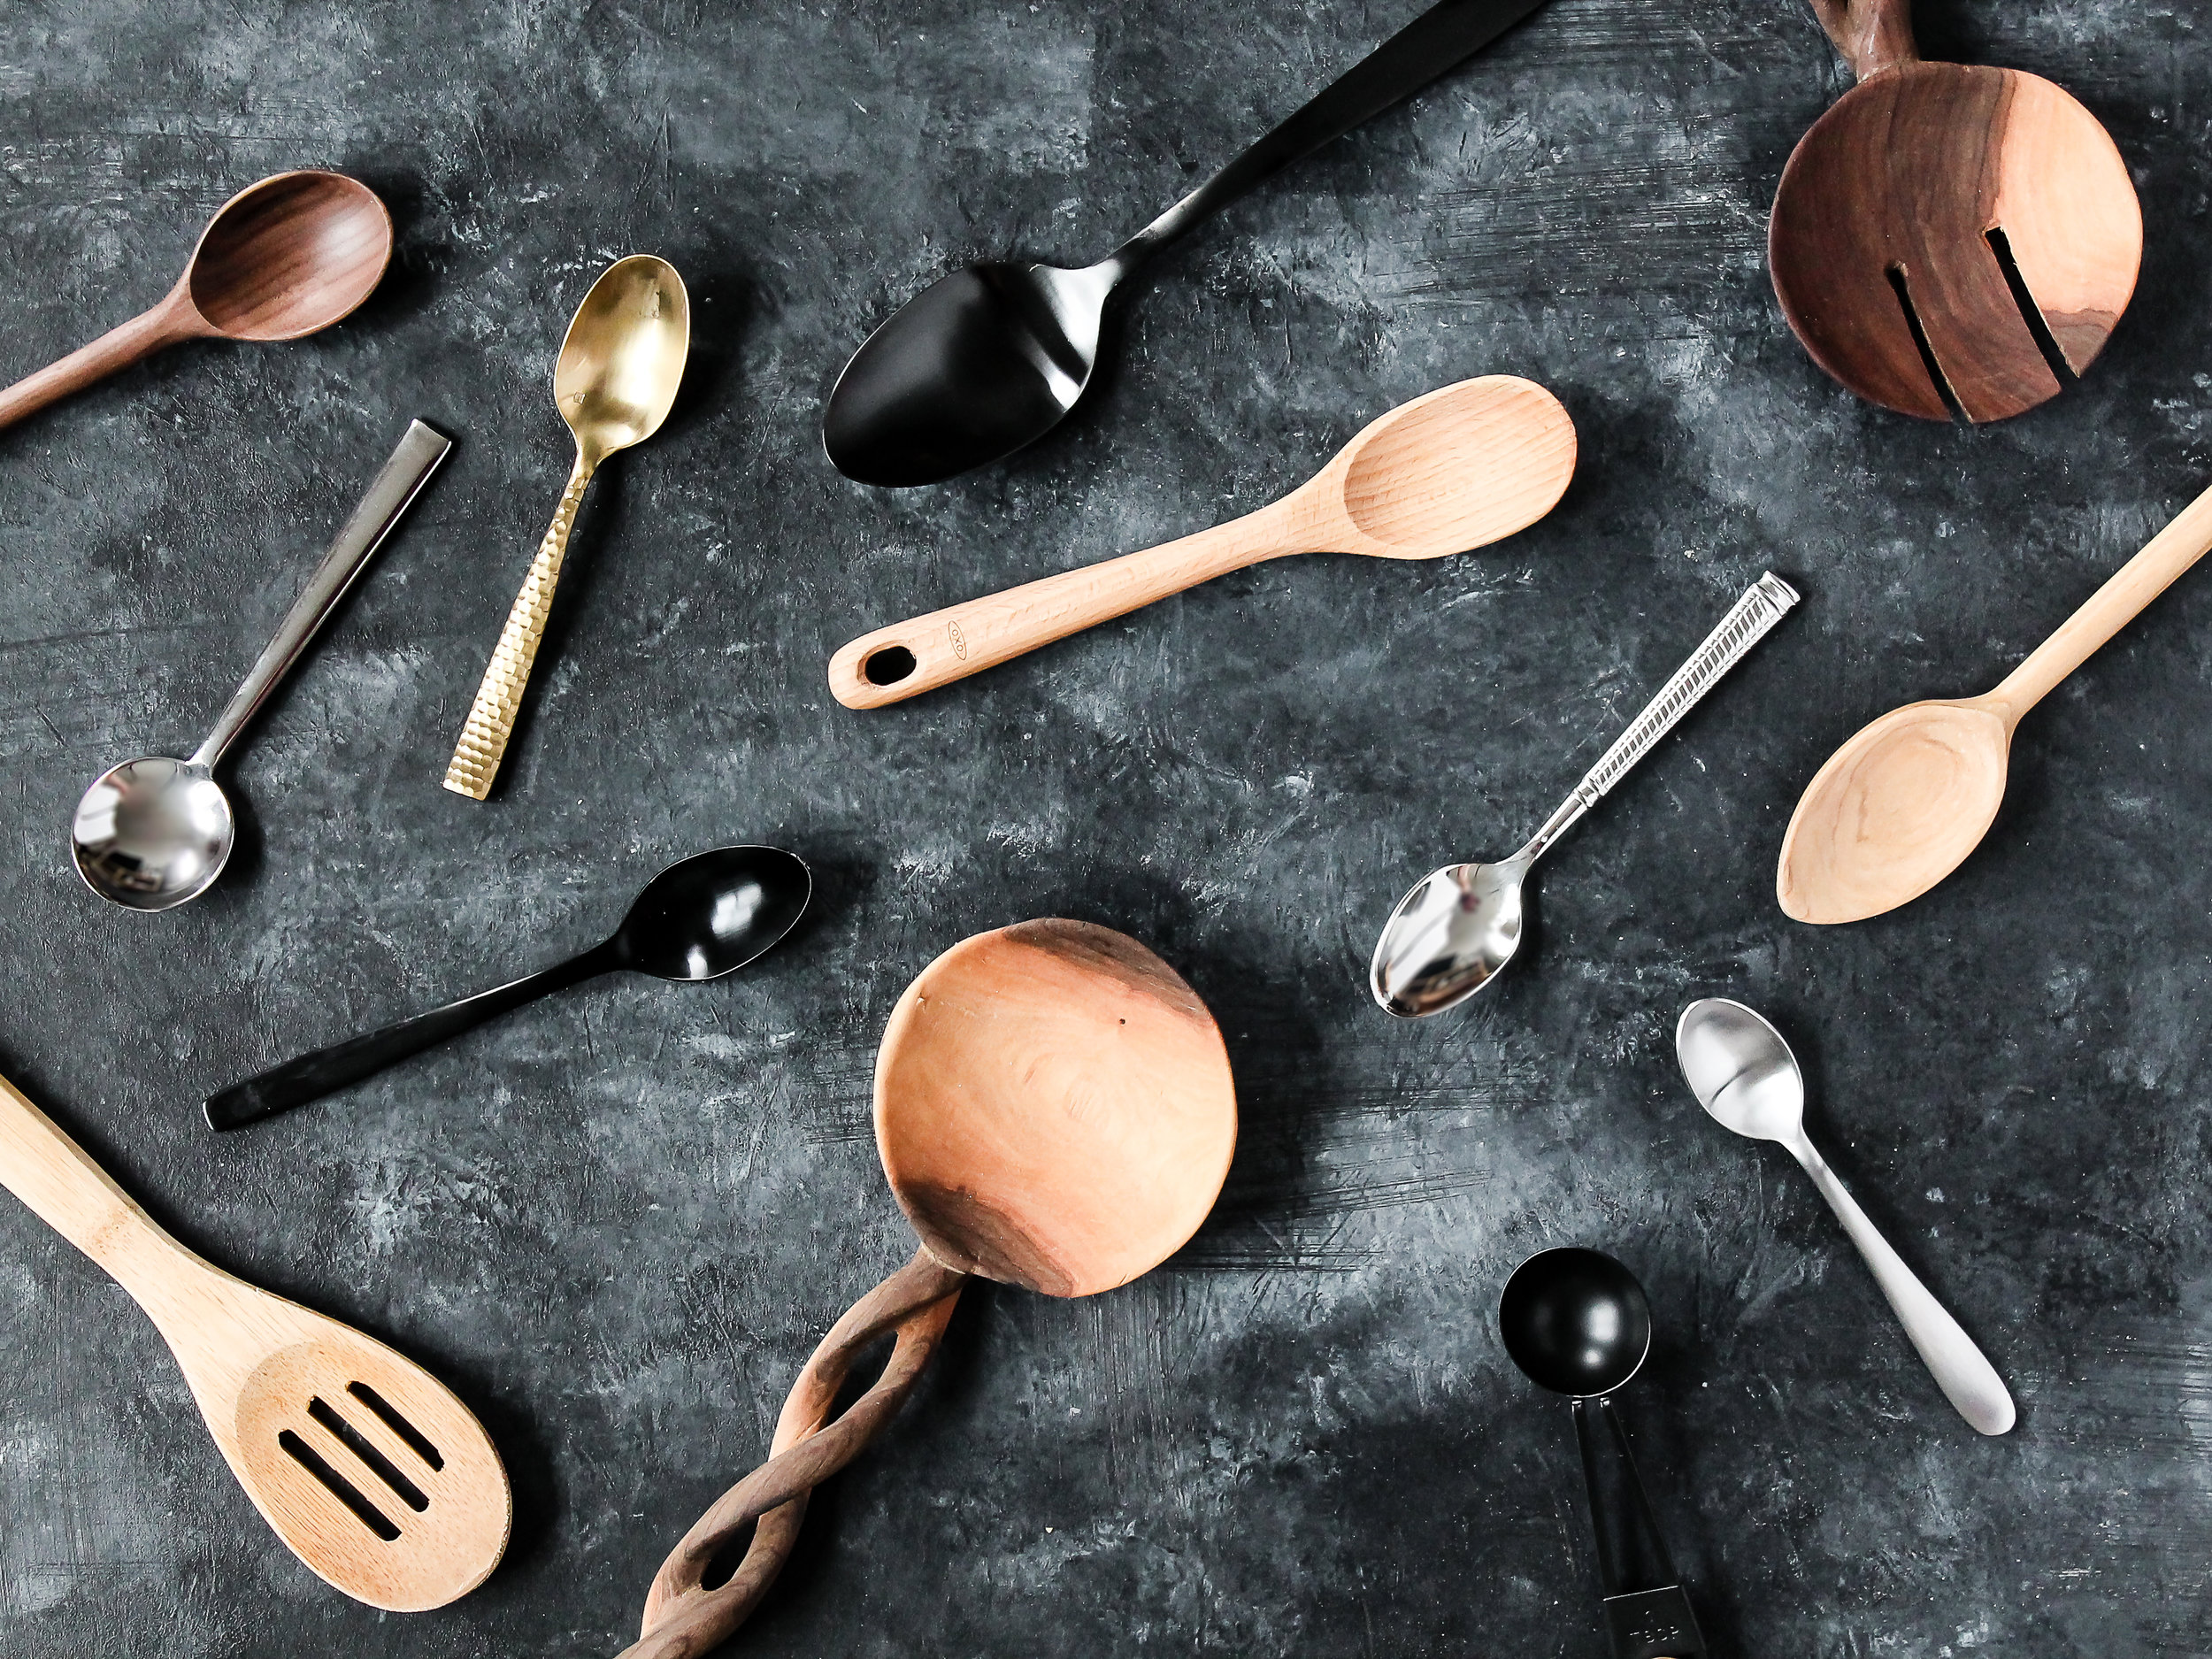 SPOON SERIES -